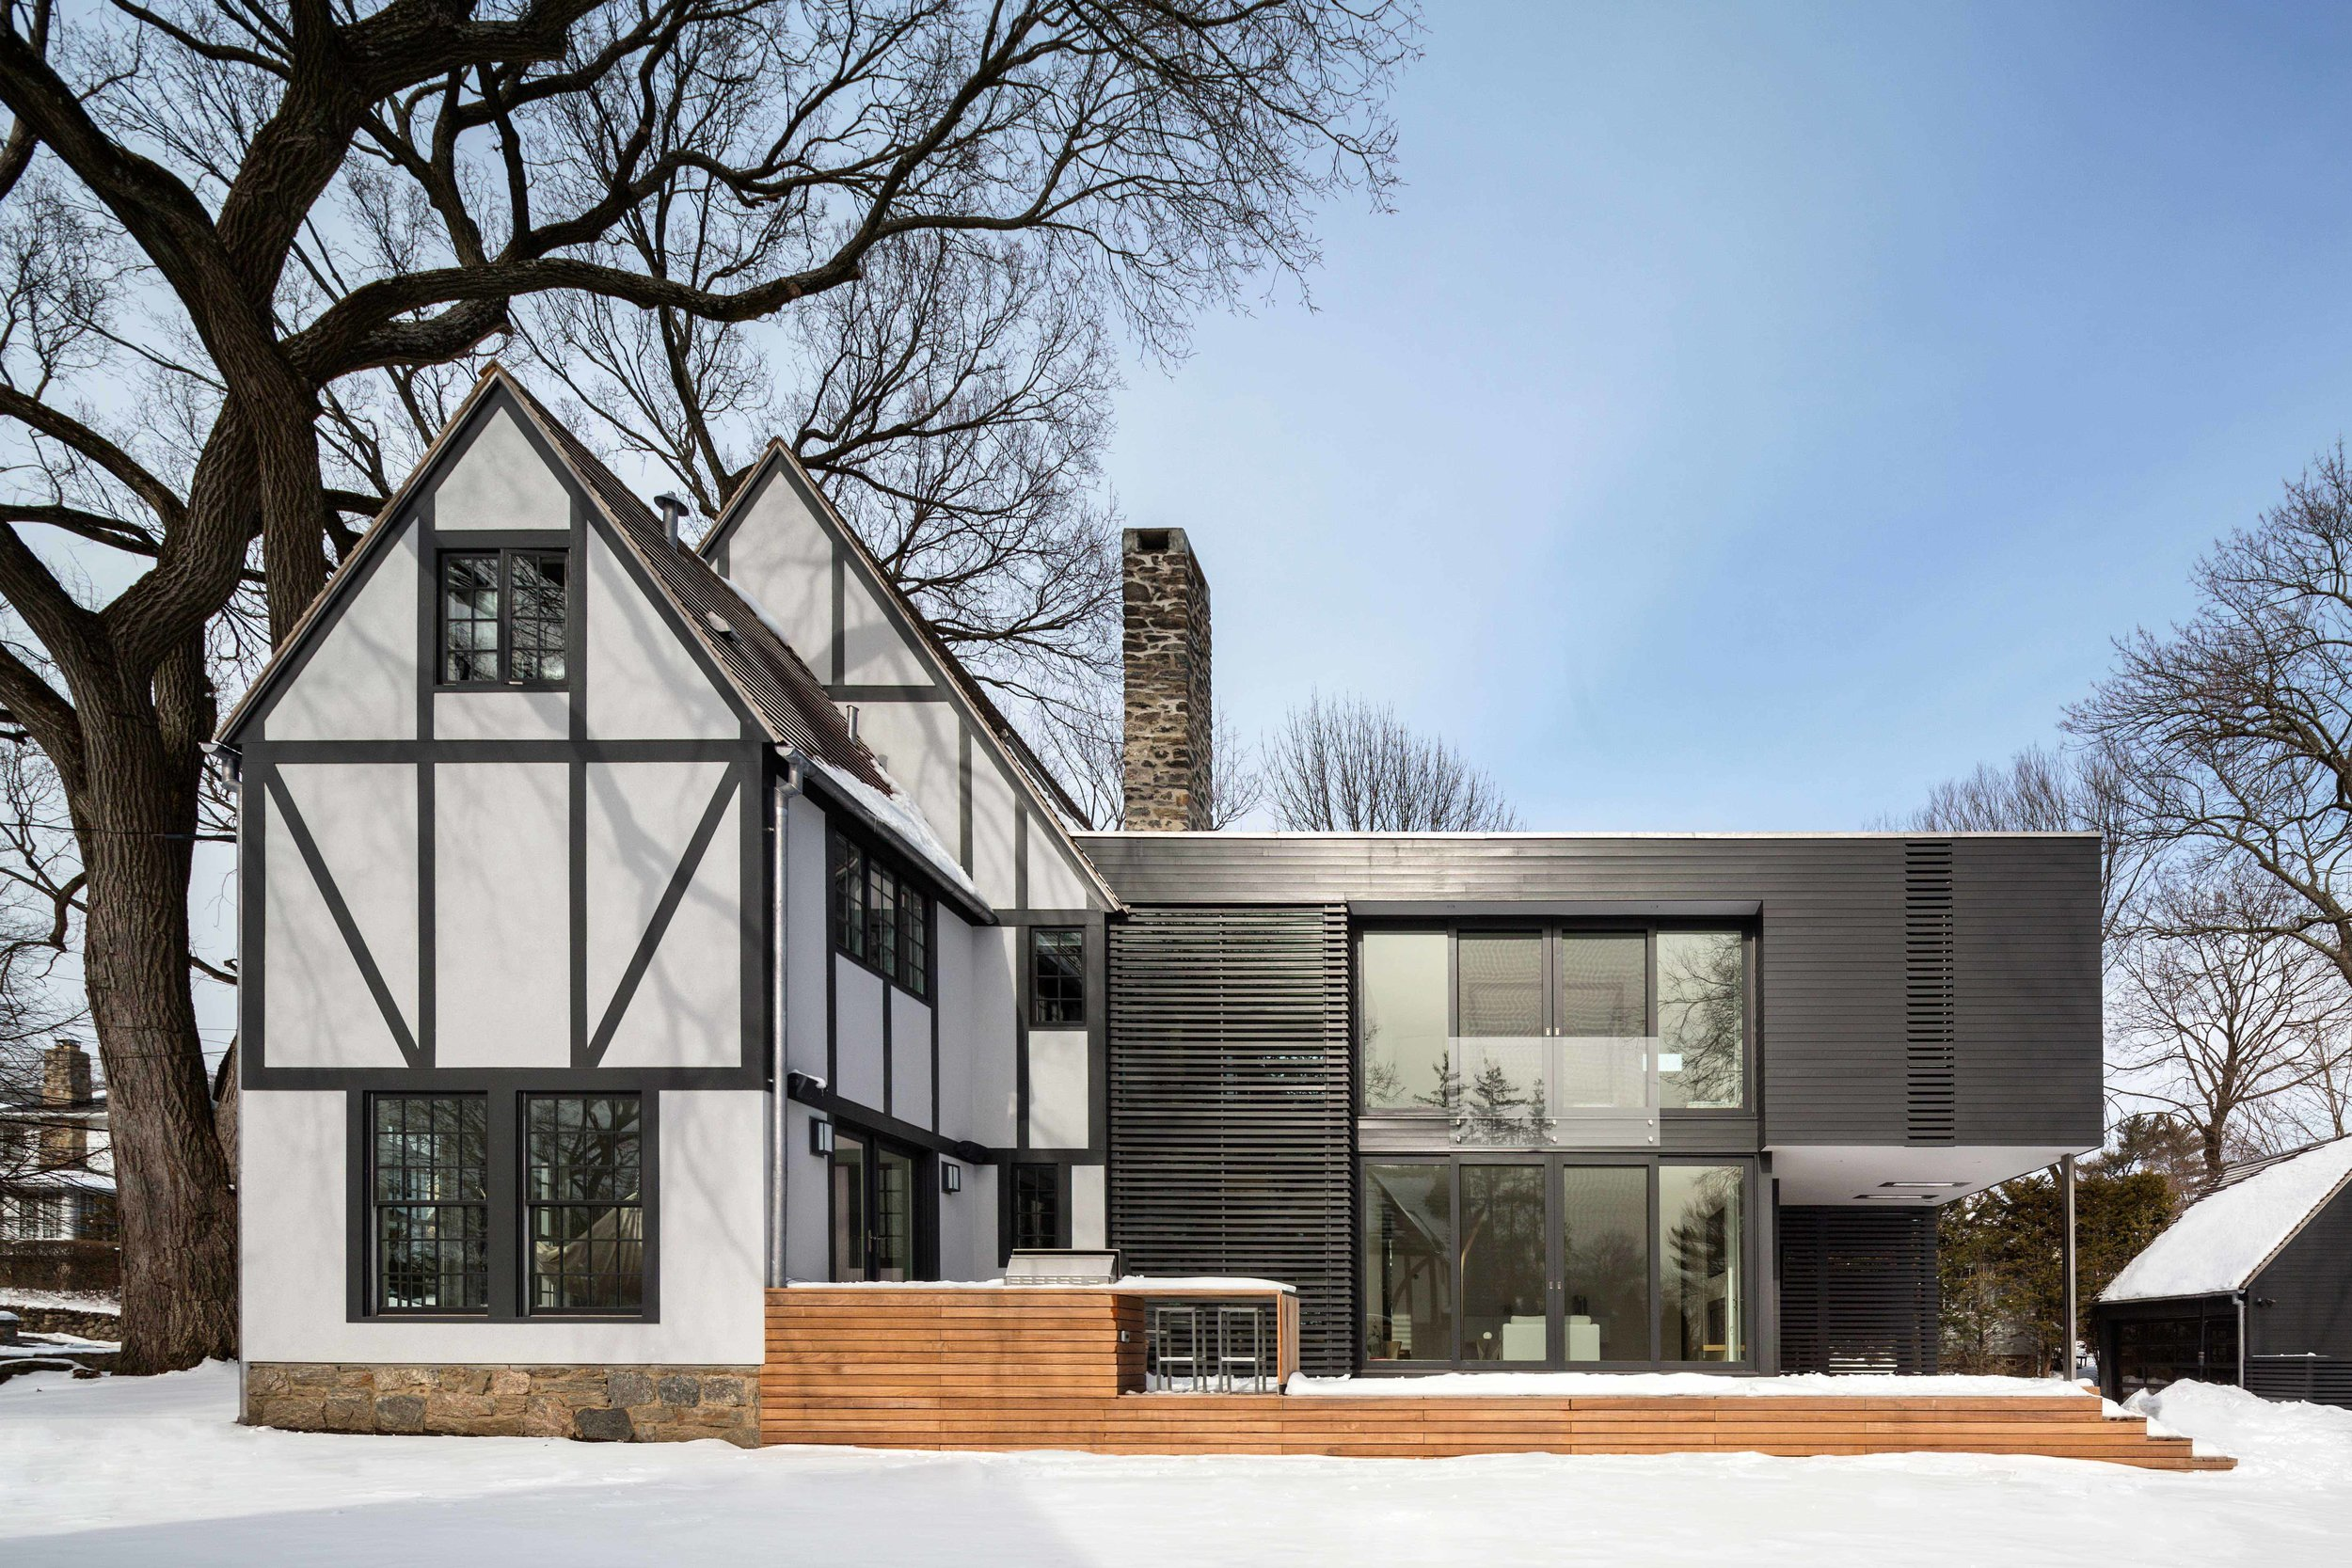 2015 CT AIA Design Award2015 AIA Westchester & Hudson Valley Design Award - Project: Westchester AdditionArchitect: Joeb Moore + Partners